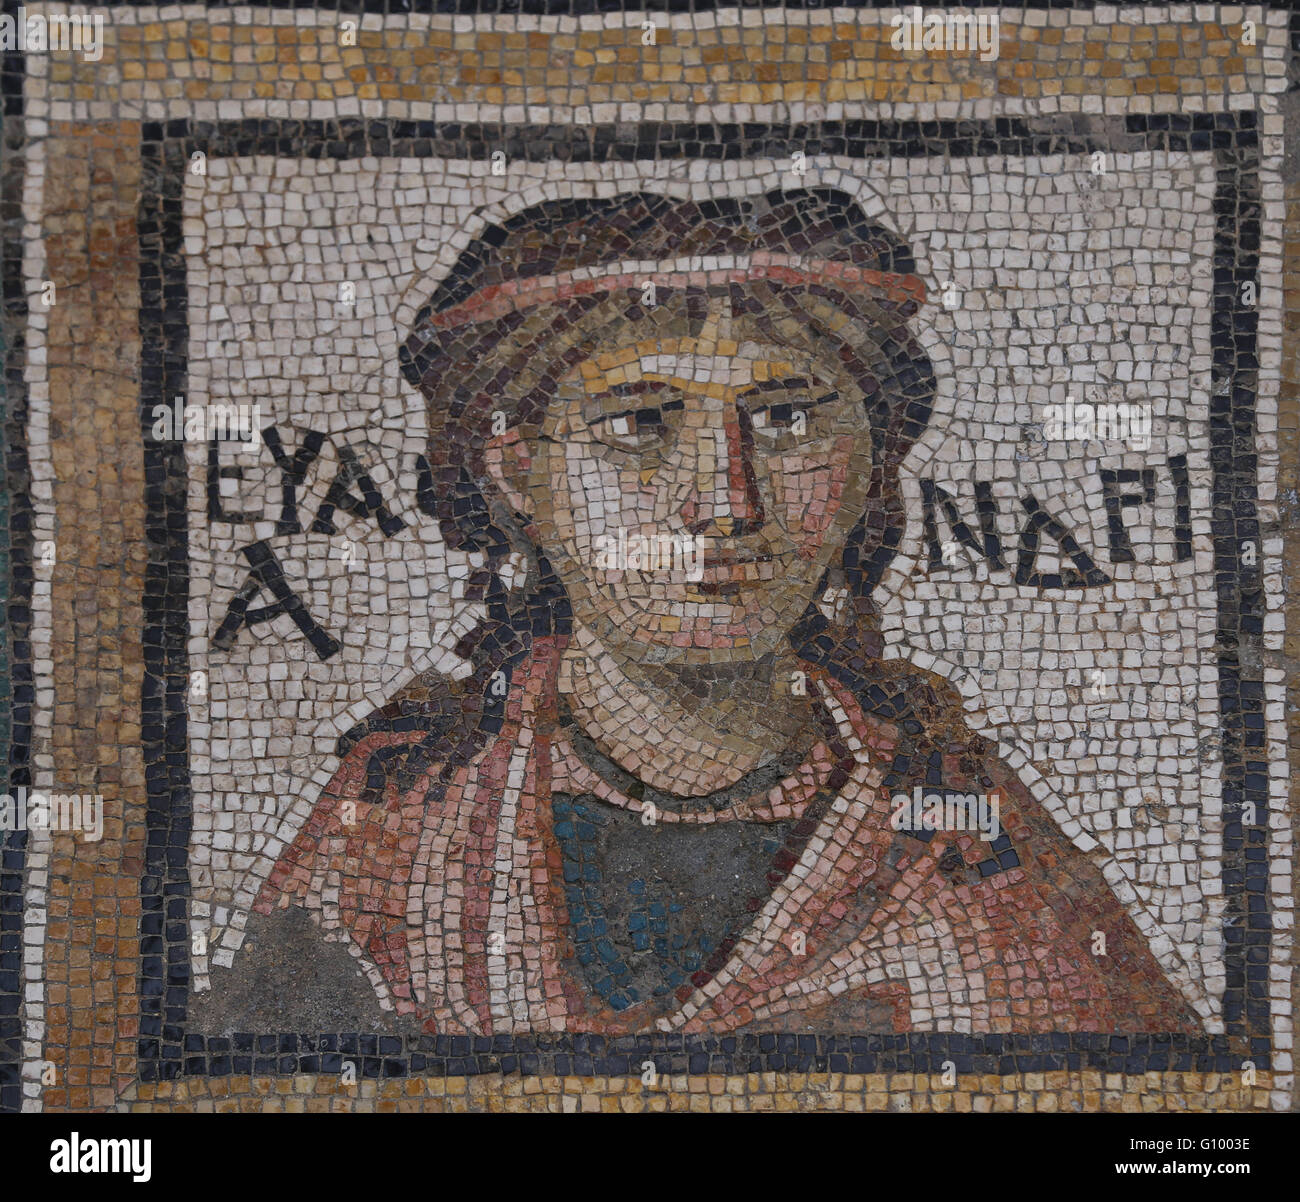 Mosaic of the Four Seasons. C. 325 AD. Found in Daphne (now Antakya, Turkey).  Louvre Museum. Paris. France. - Stock Image